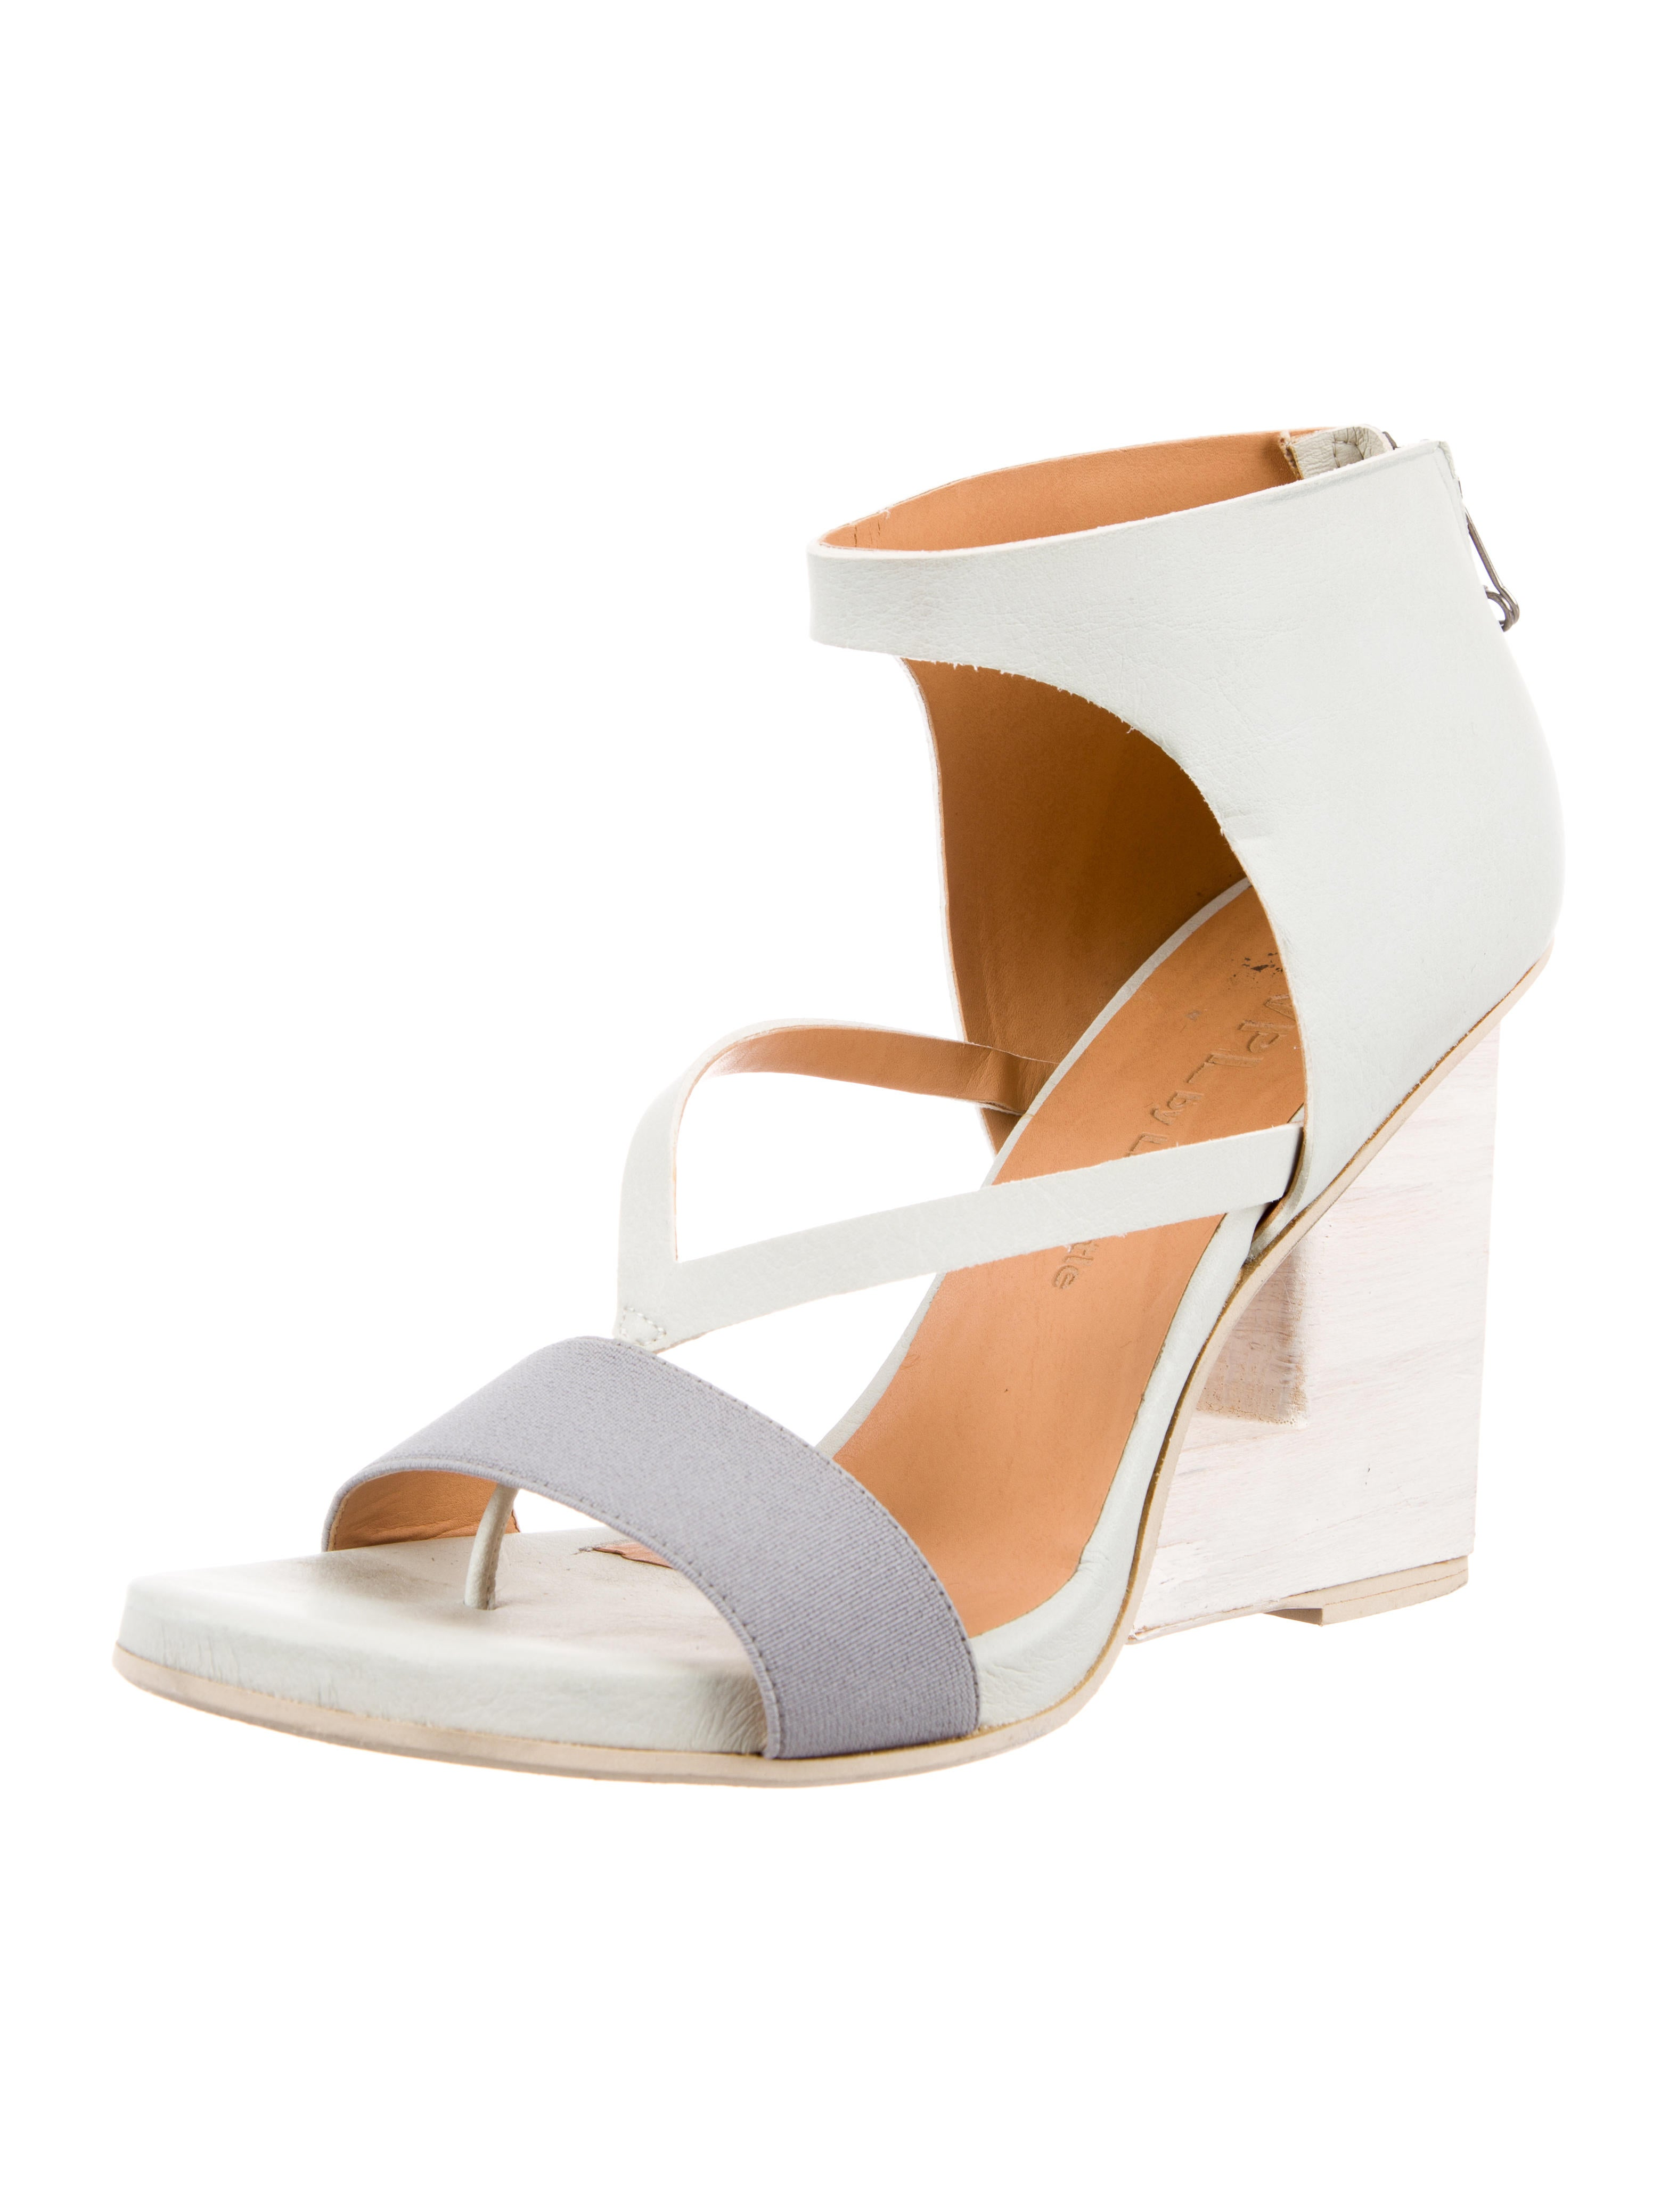 VPL Leather Cutout Wedges buy cheap tumblr browse for sale real cheap online clearance store for sale really SRAjIZ